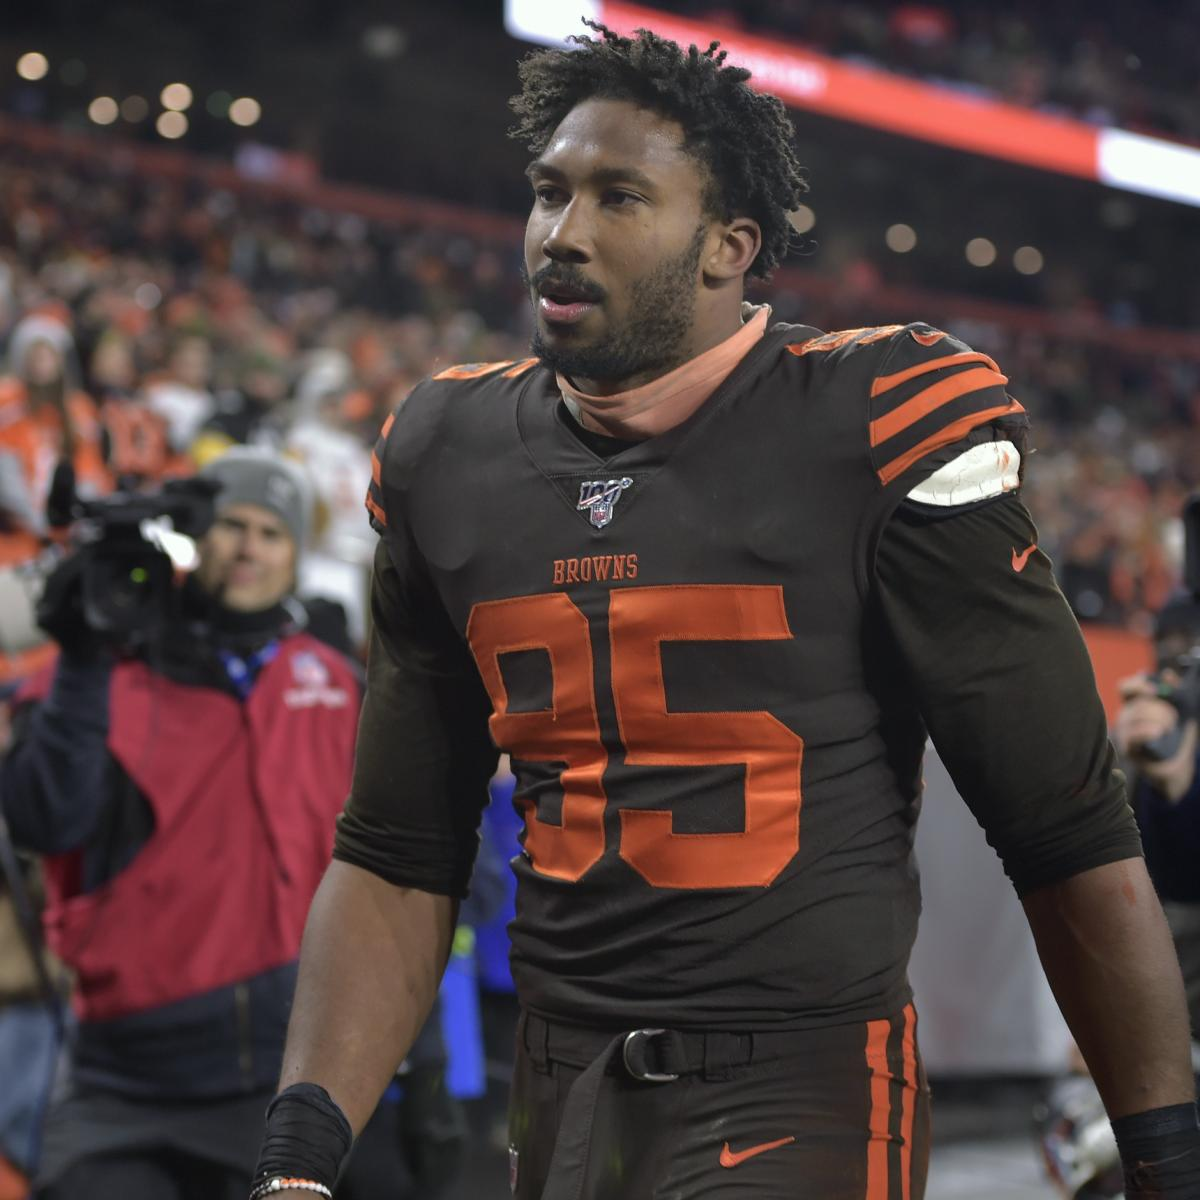 NFL Makes Right Move Reinstating Myles Garrett, But Reputation Forever Tarnished